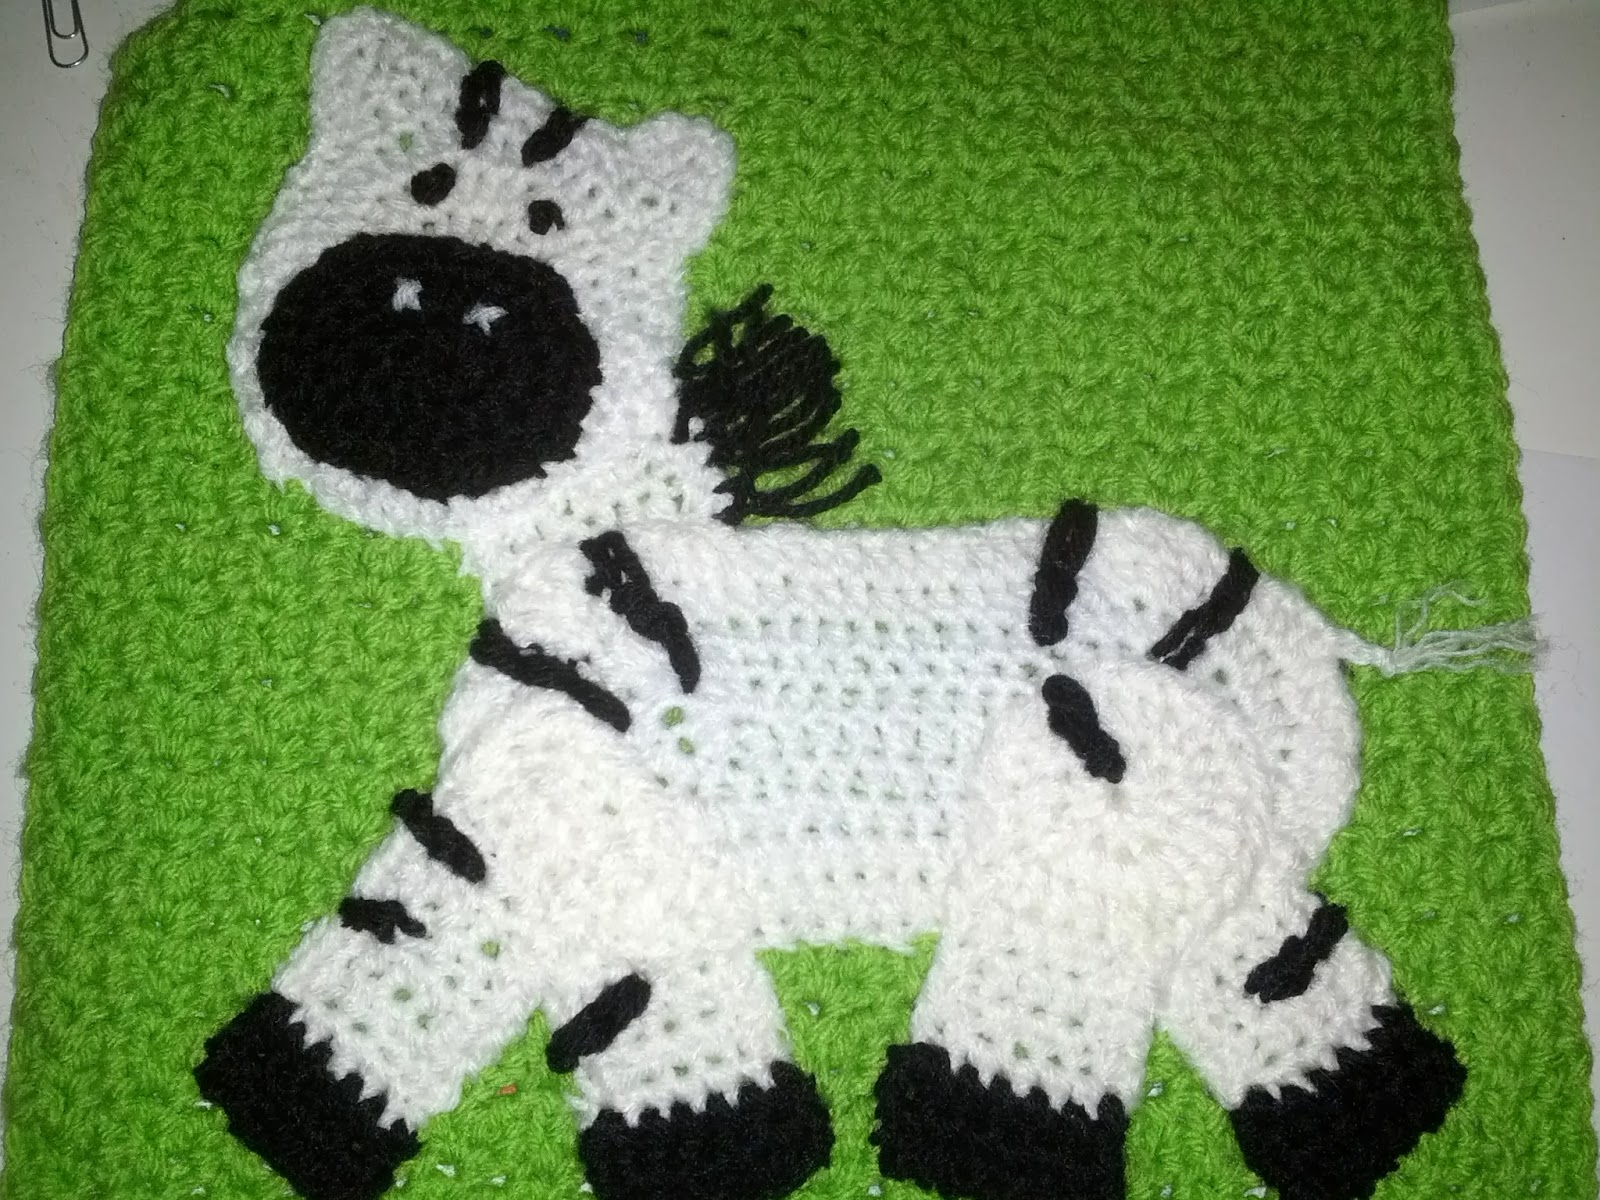 Crochet Zebra Blanket : Blooming Lovely: WIP - Crochet Zoo Blanket - Zebra Applique